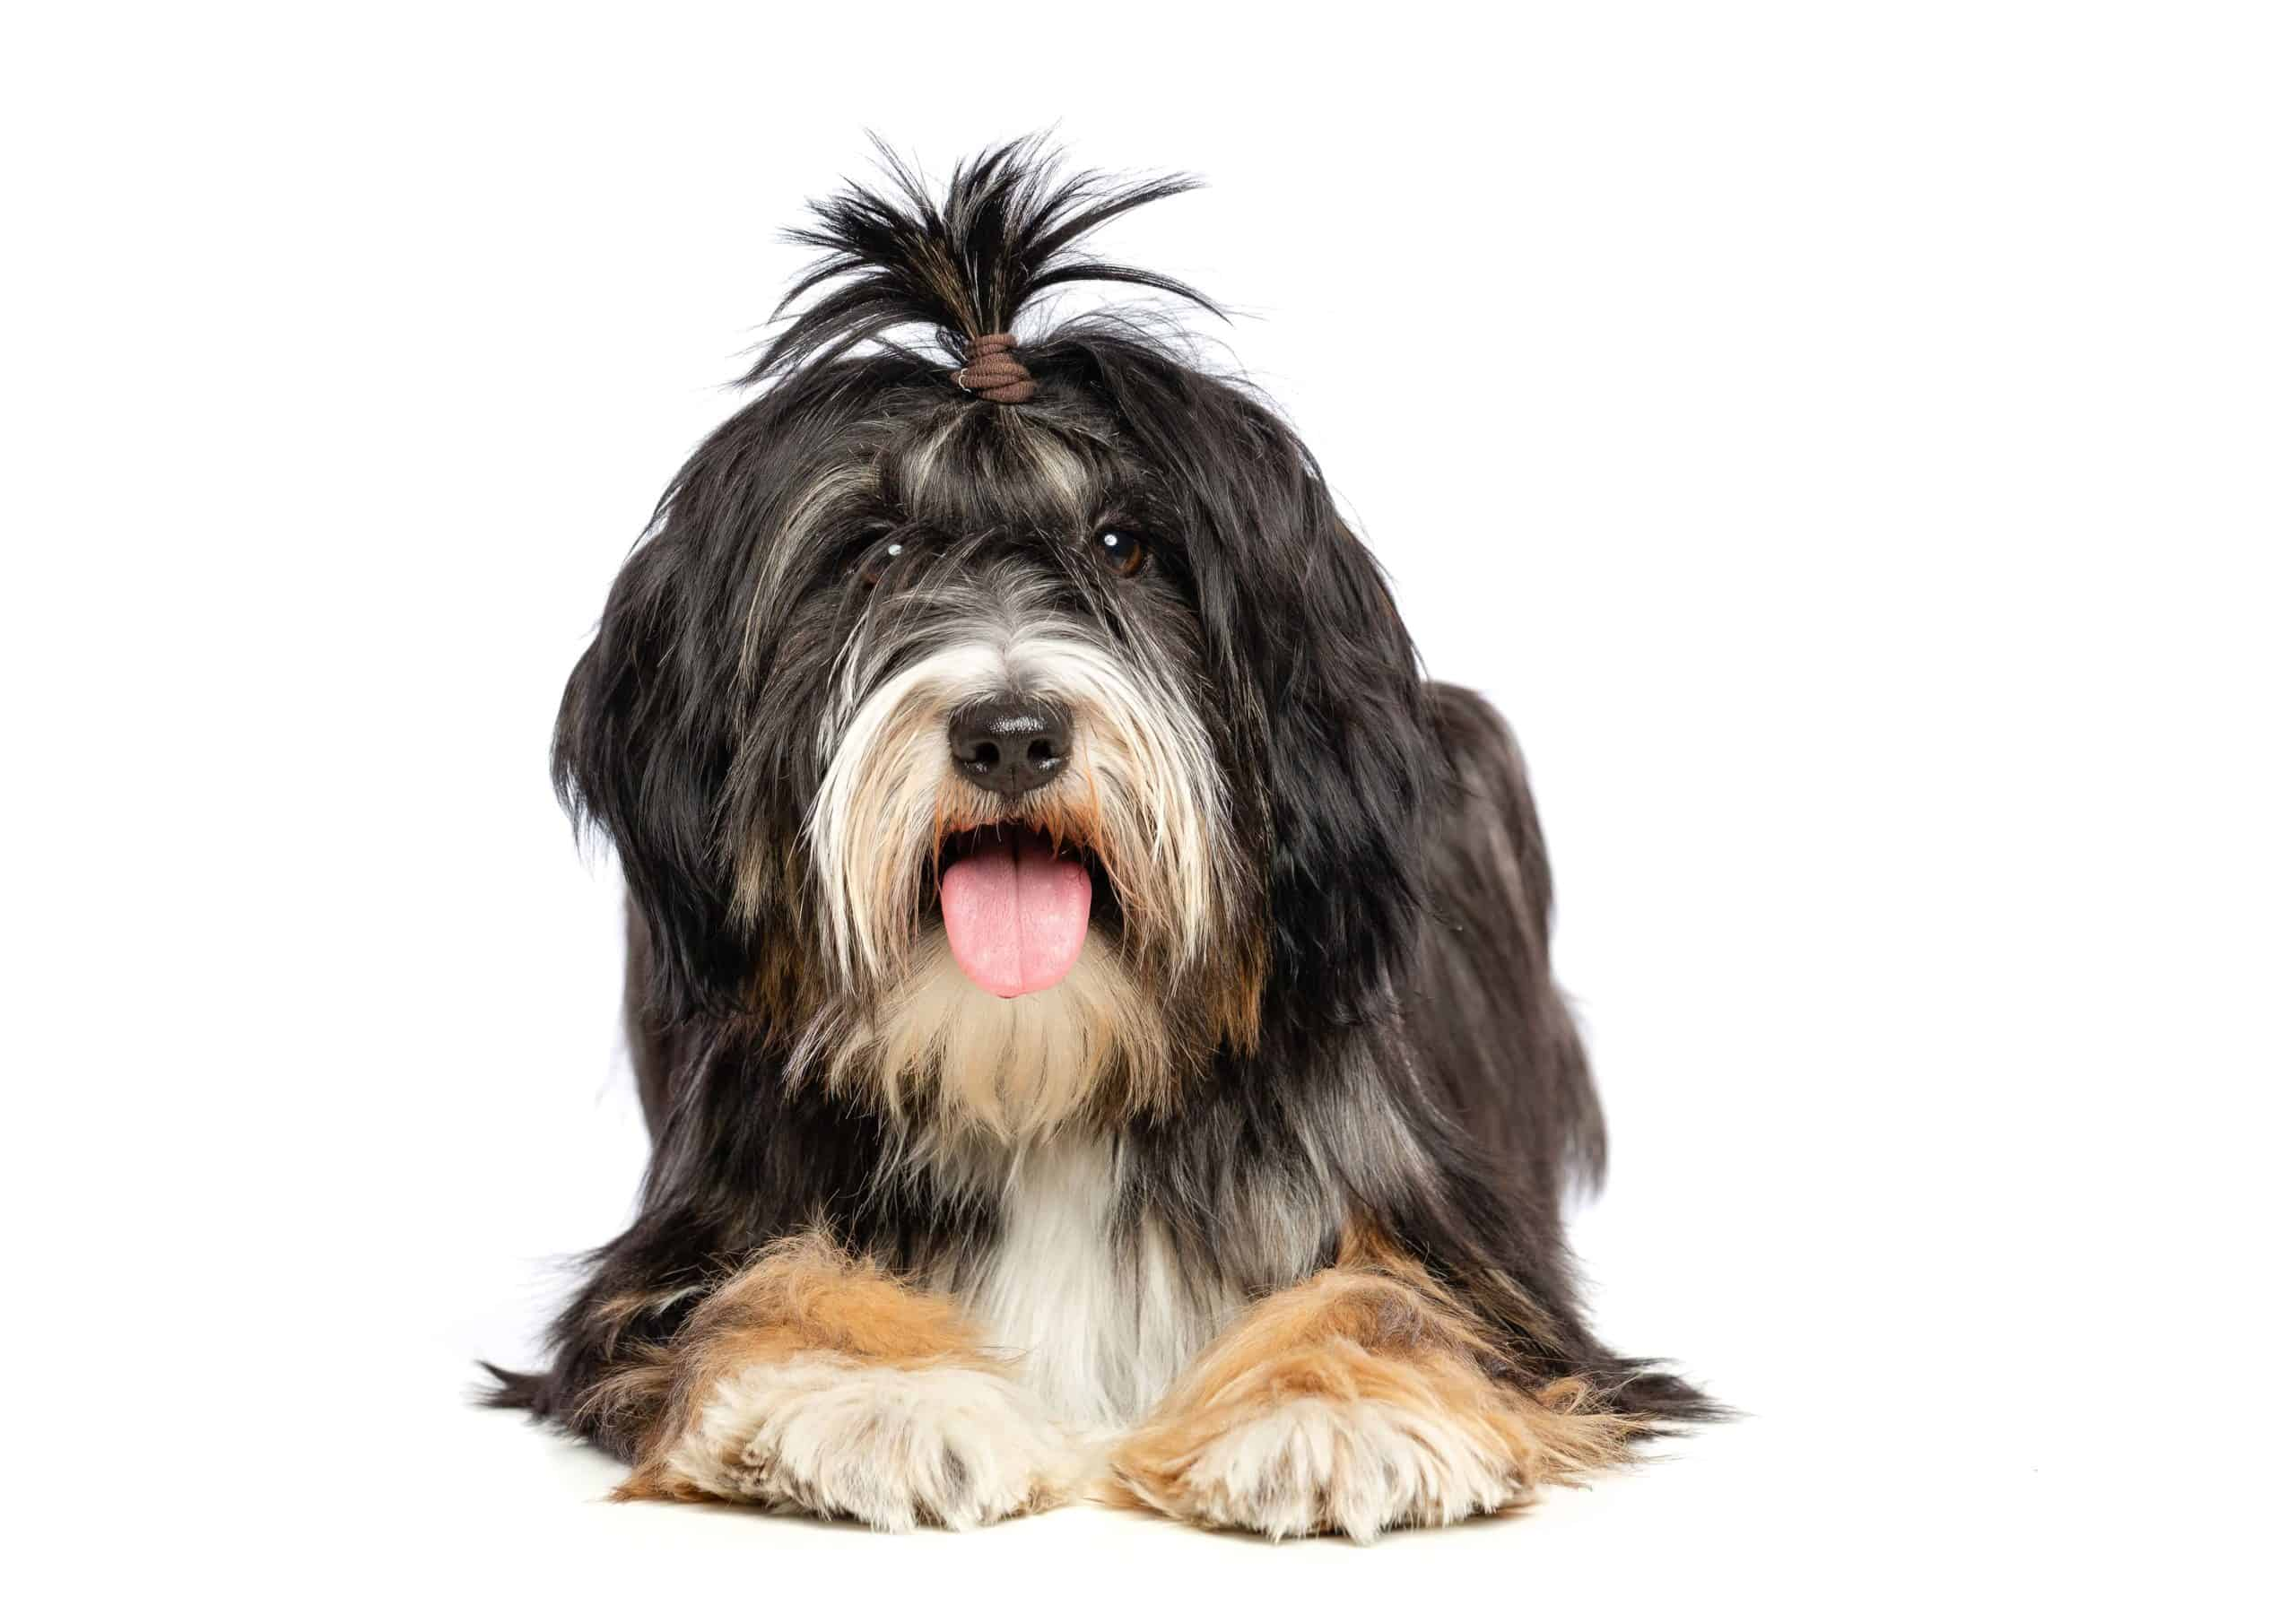 The Tibetan terrier is considered a non-shedding dog breed.